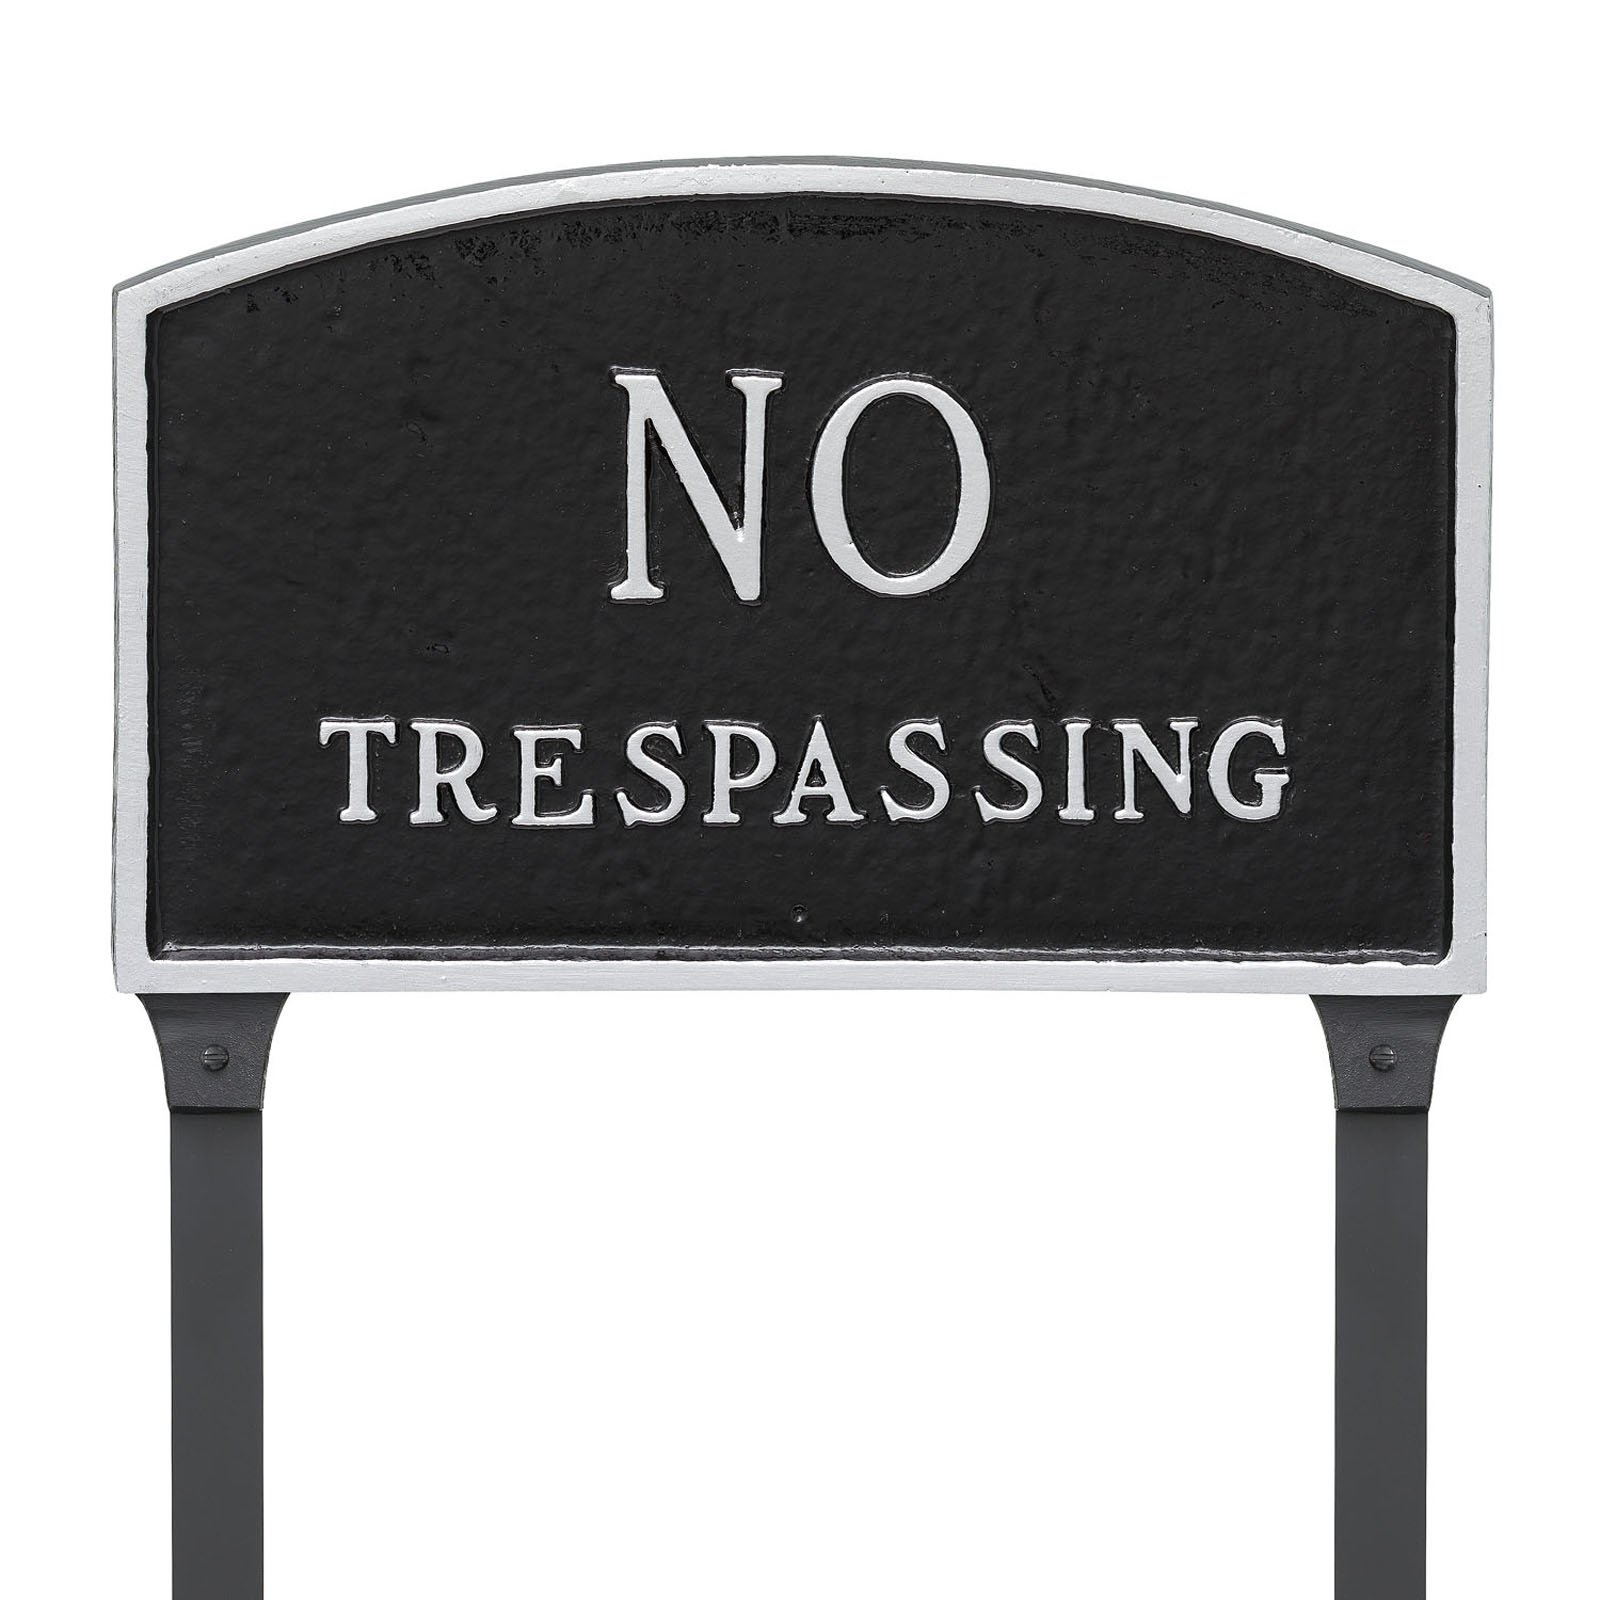 Montague Metal Products No Trespassing Arched Lawn Plaque by Montague Metal Products Inc